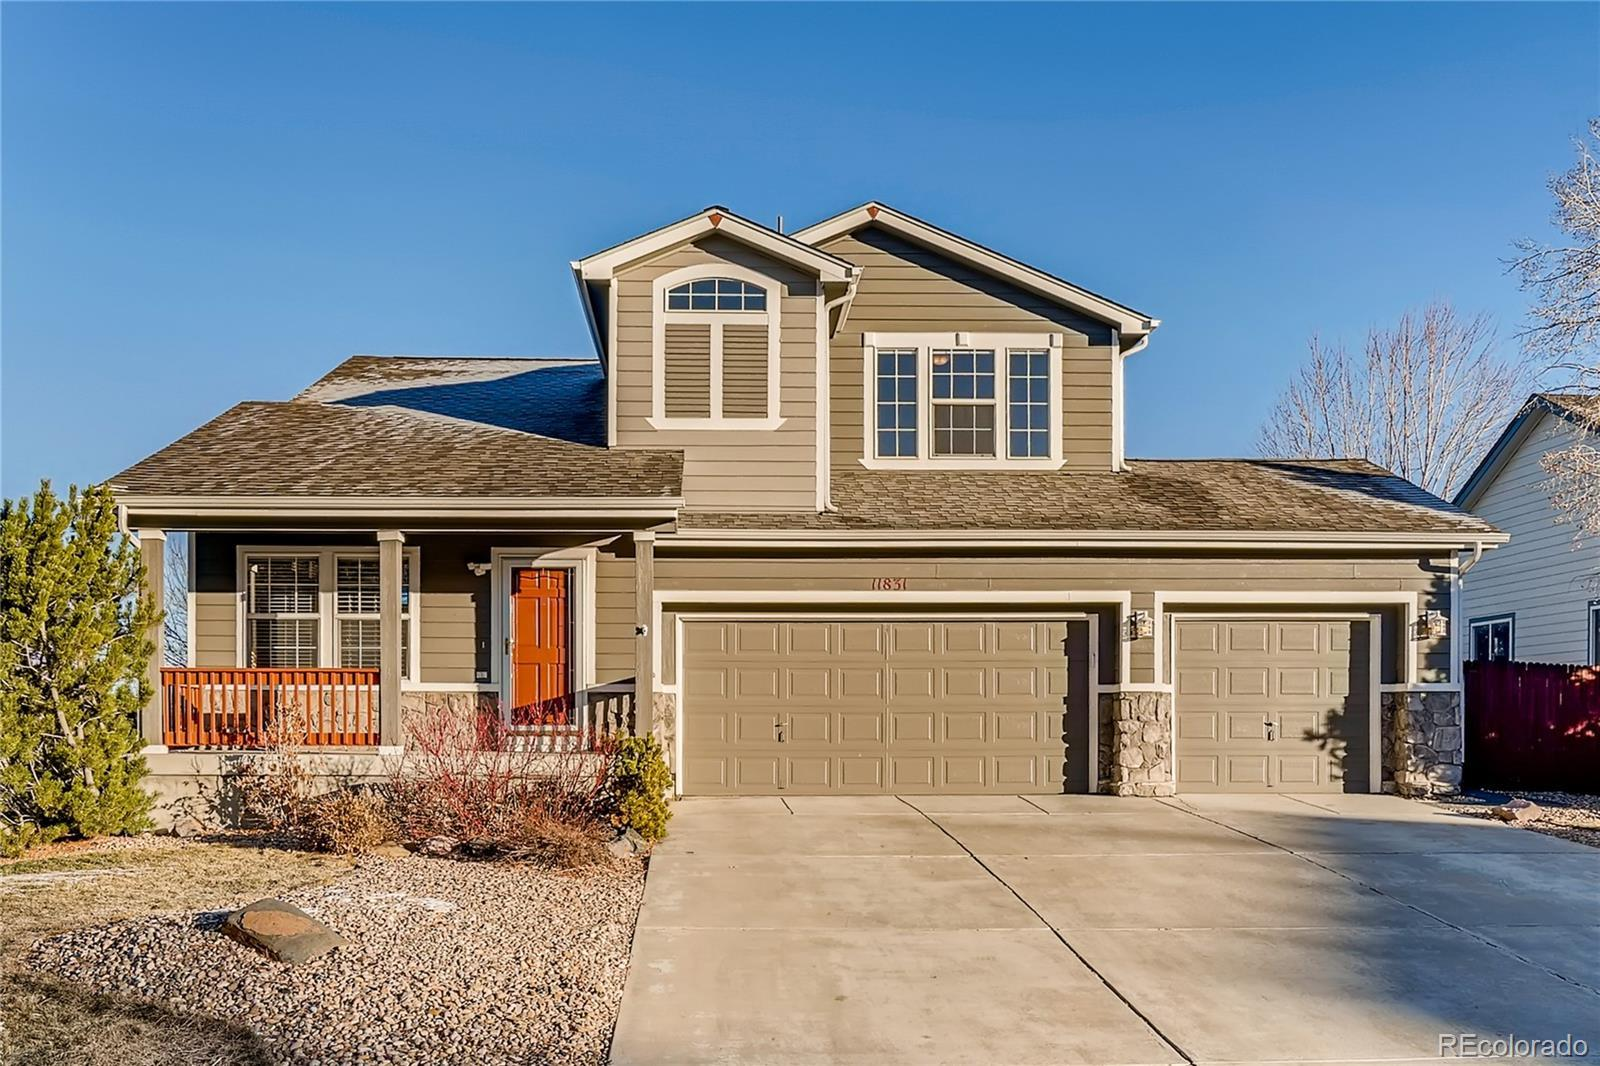 11831 W 83rd Place, Arvada, CO 80005 - #: 7524543